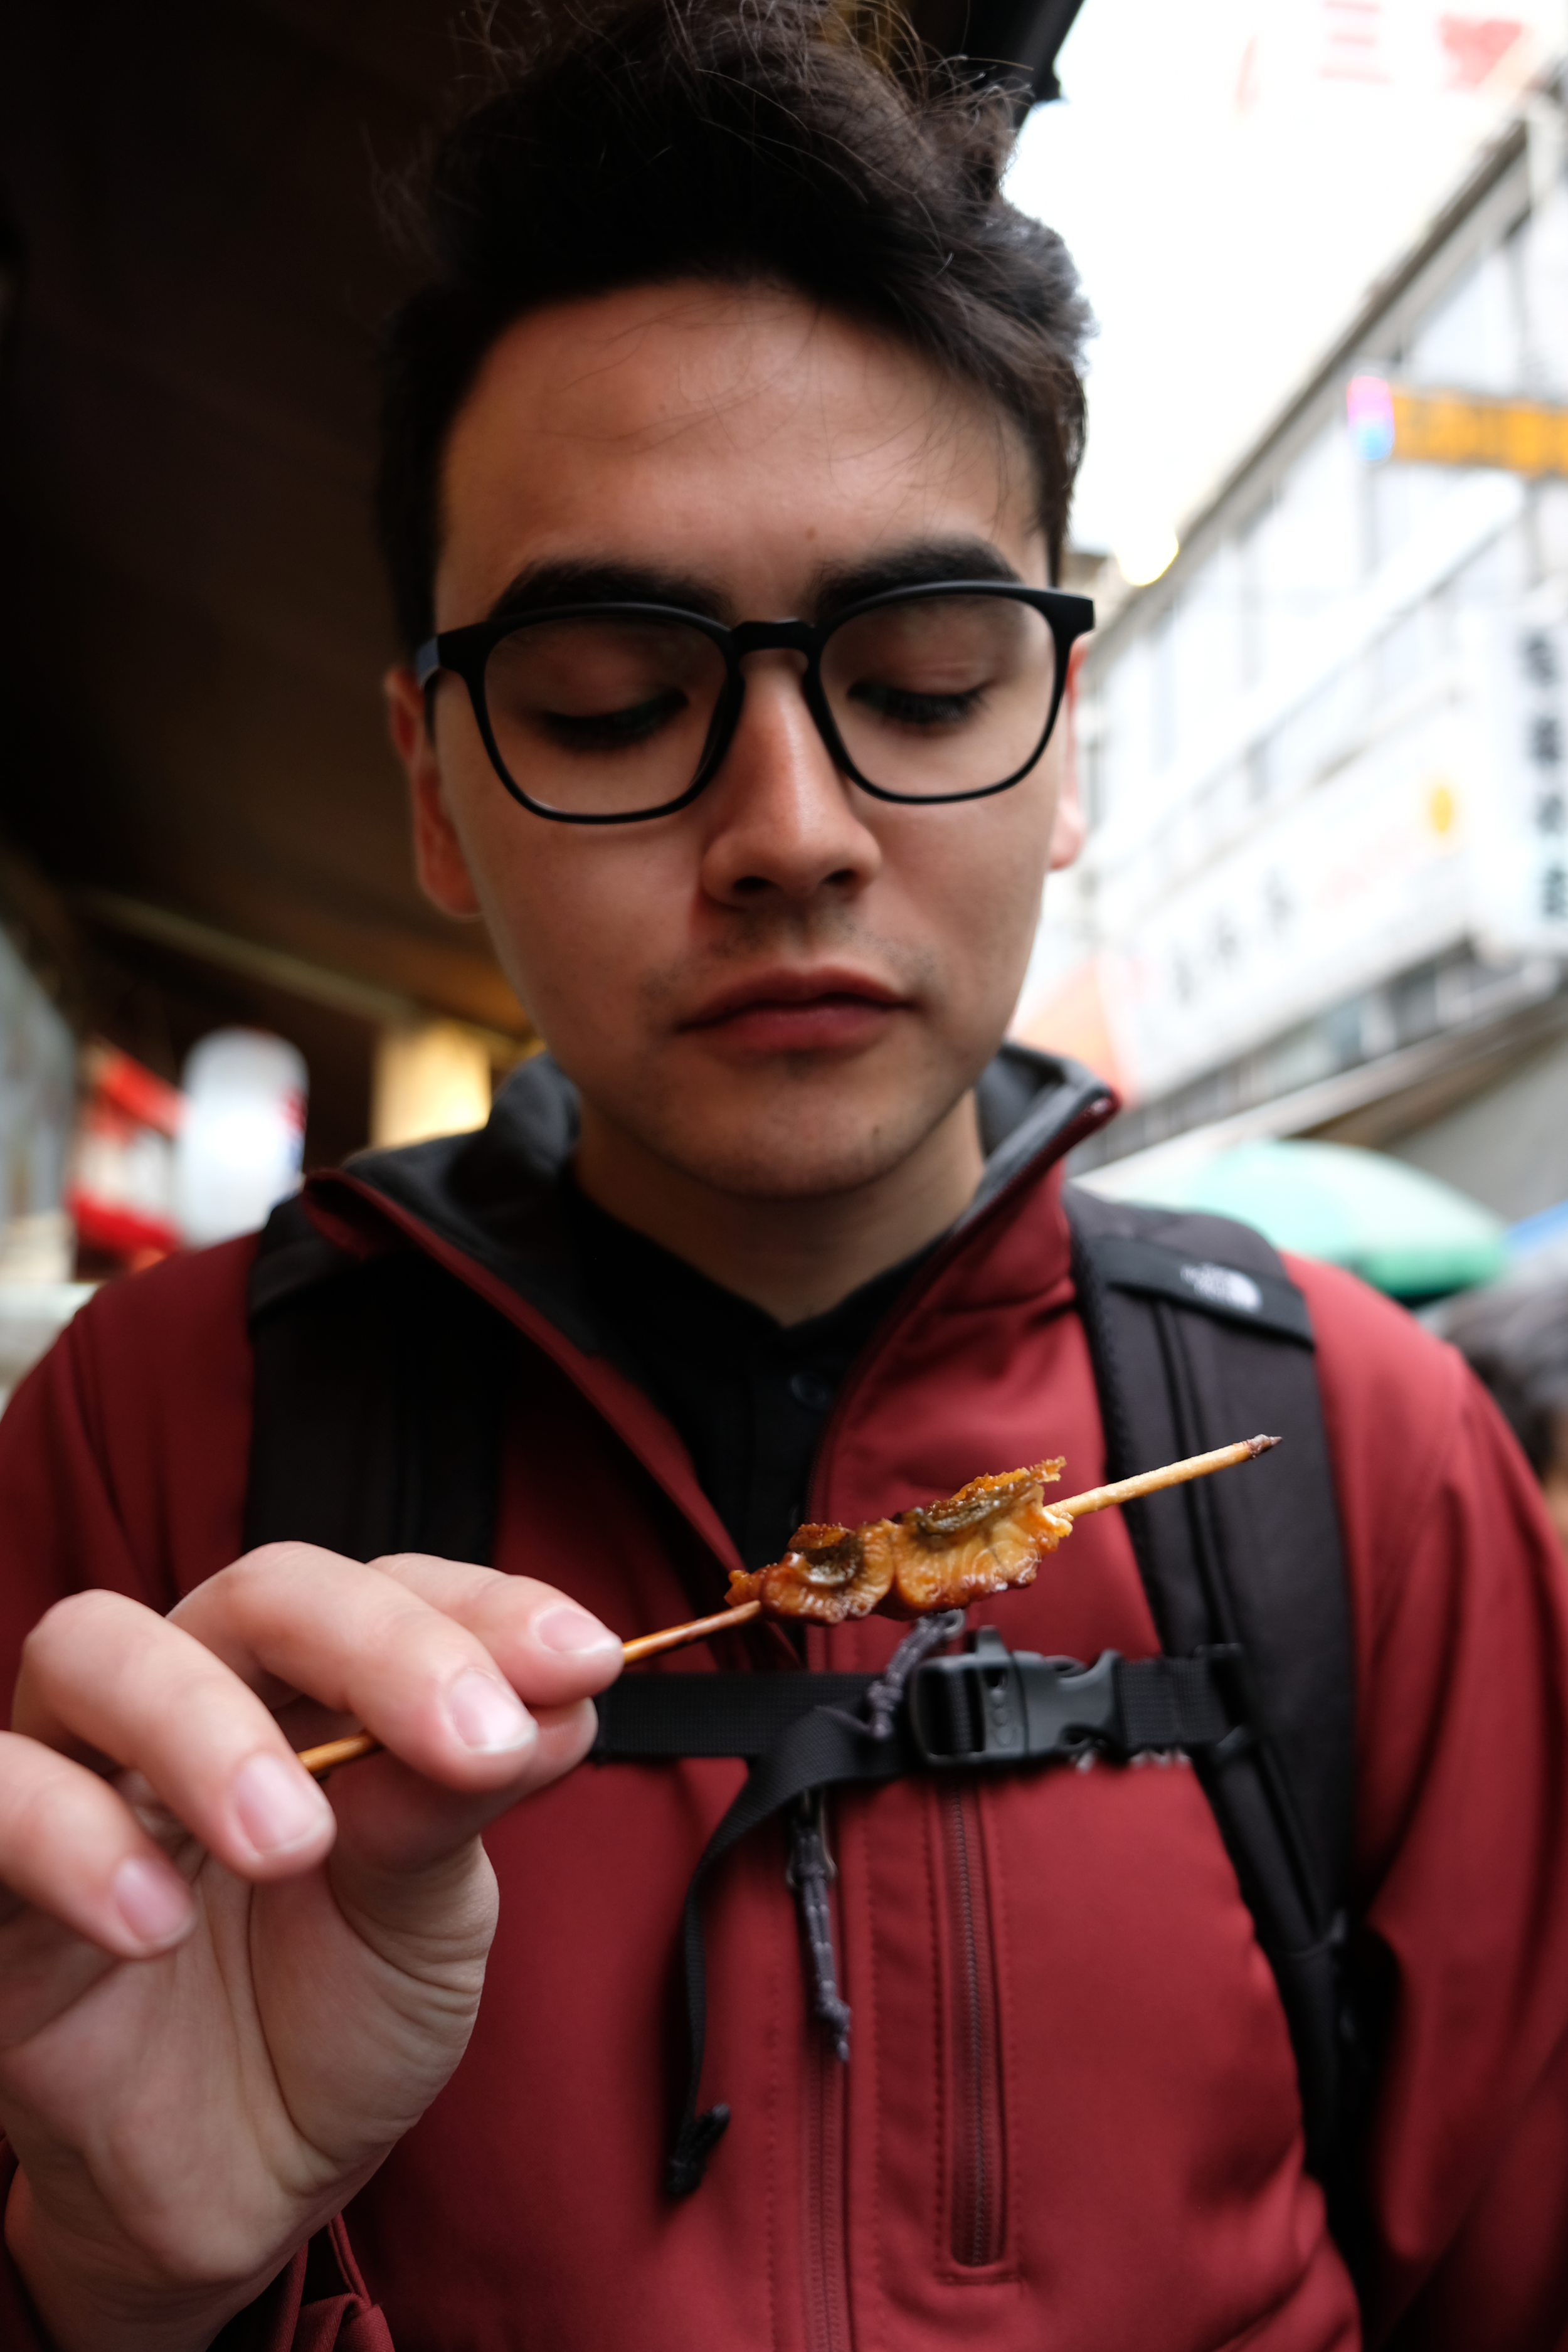 Topher enjoying unagi (eel) on a stick at the Tsukiji Market in Tokyo